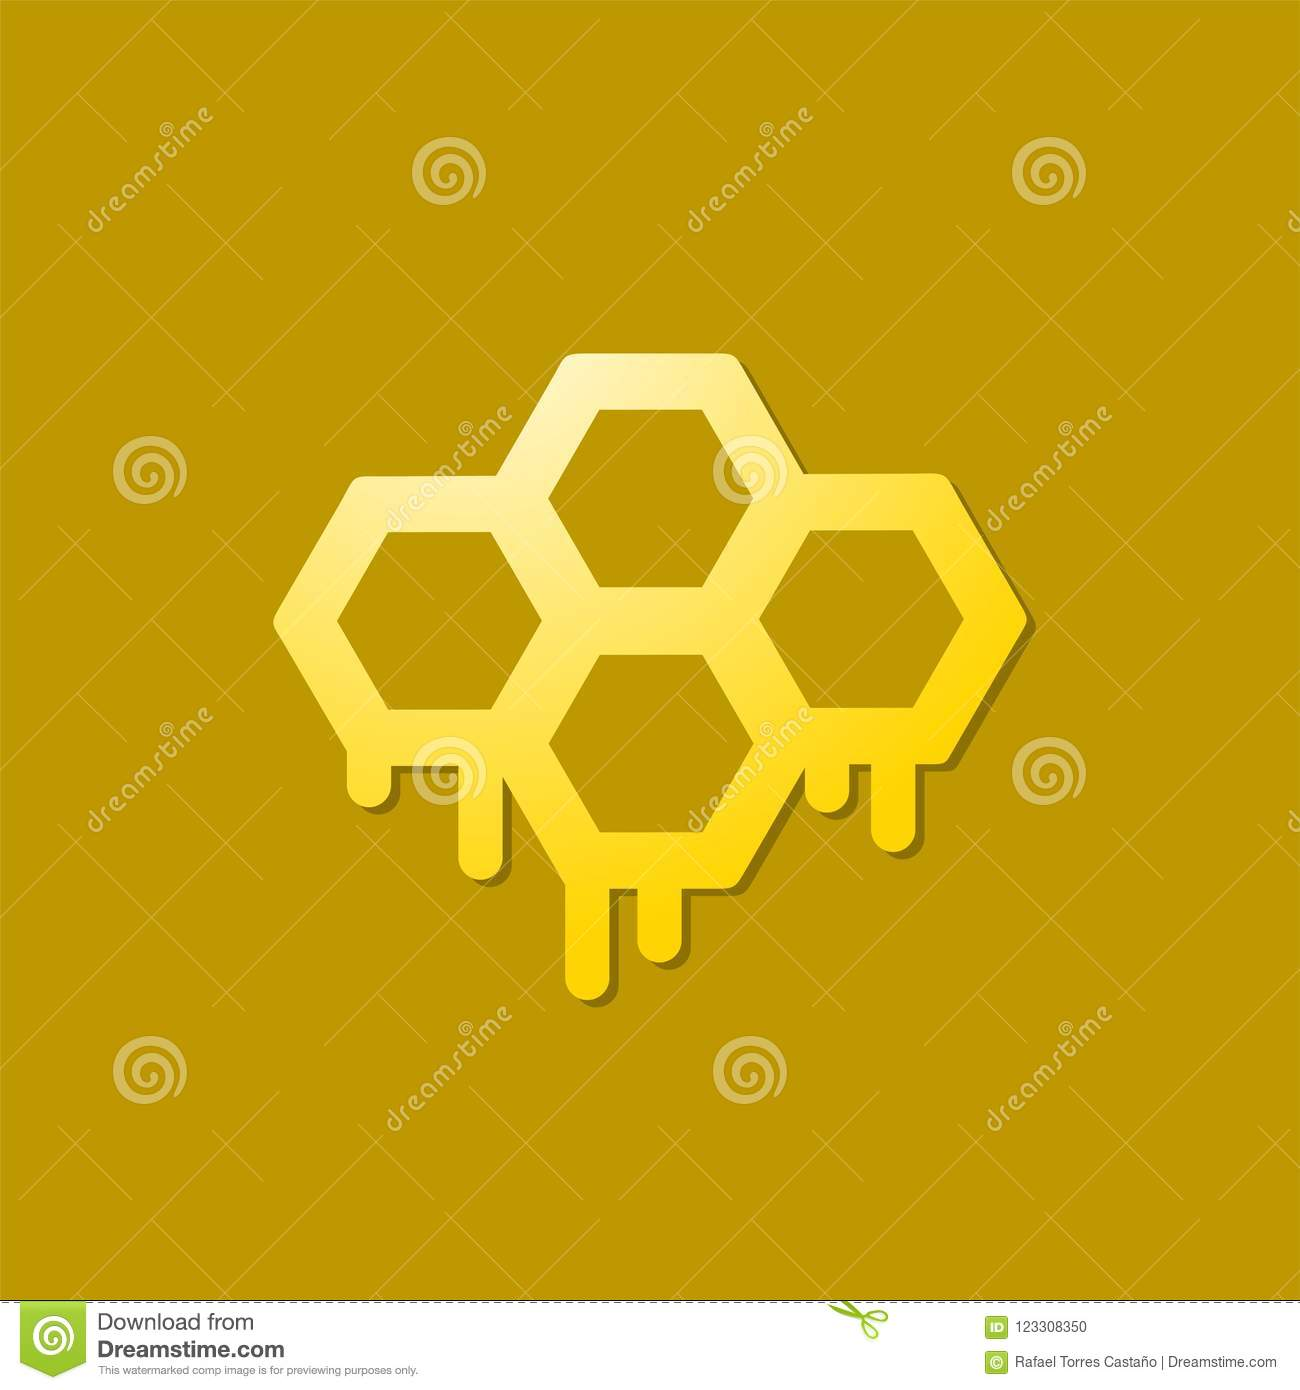 Honey hive icon stock vector  Illustration of pattern - 123308350